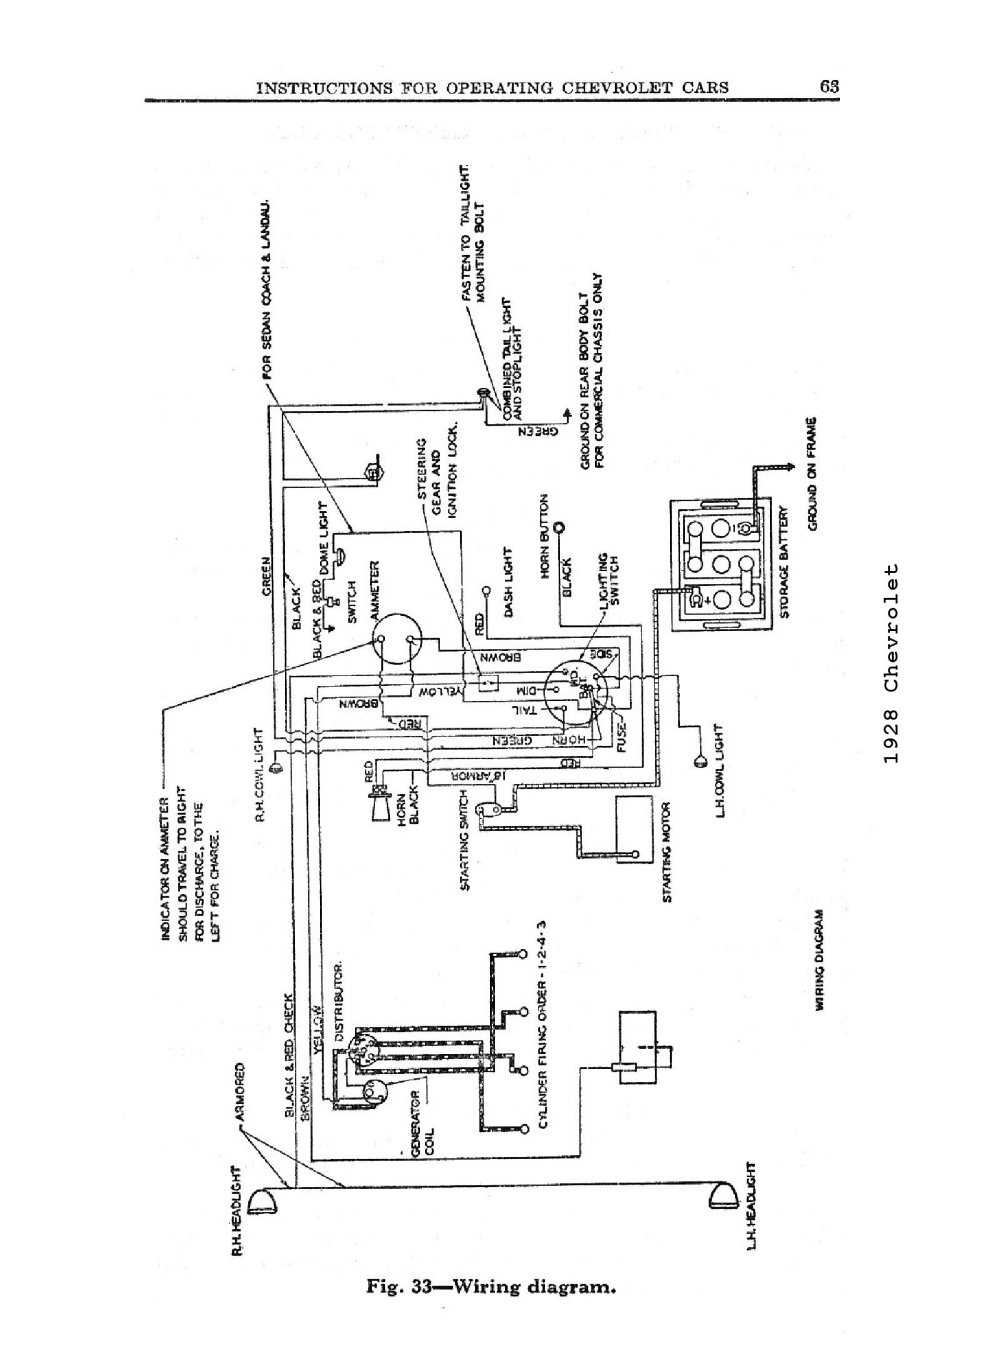 medium resolution of 1954 plymouth wiring diagram wiring diagram query 1954 plymouth wiring diagram 1954 plymouth wiring diagram